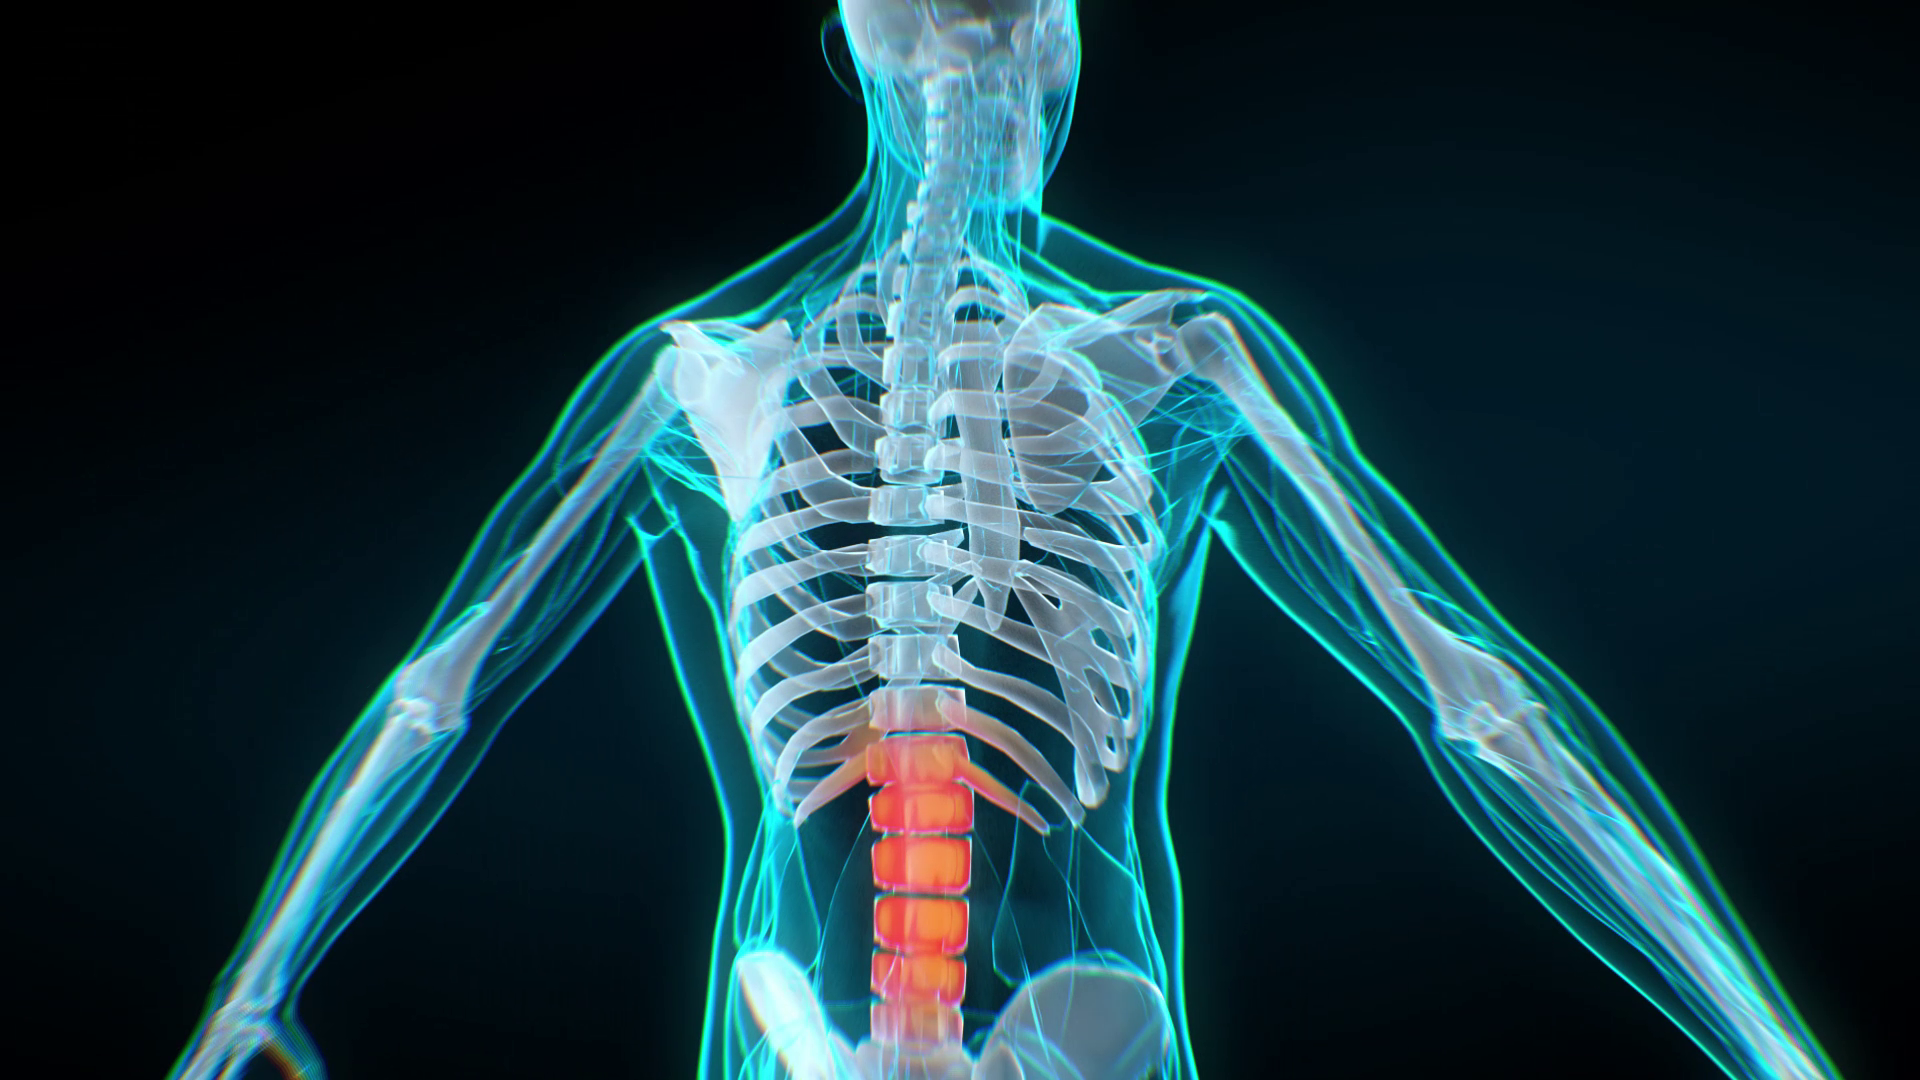 Human skeleton   A Revolutionary Approach to Fast Healing and Recovery